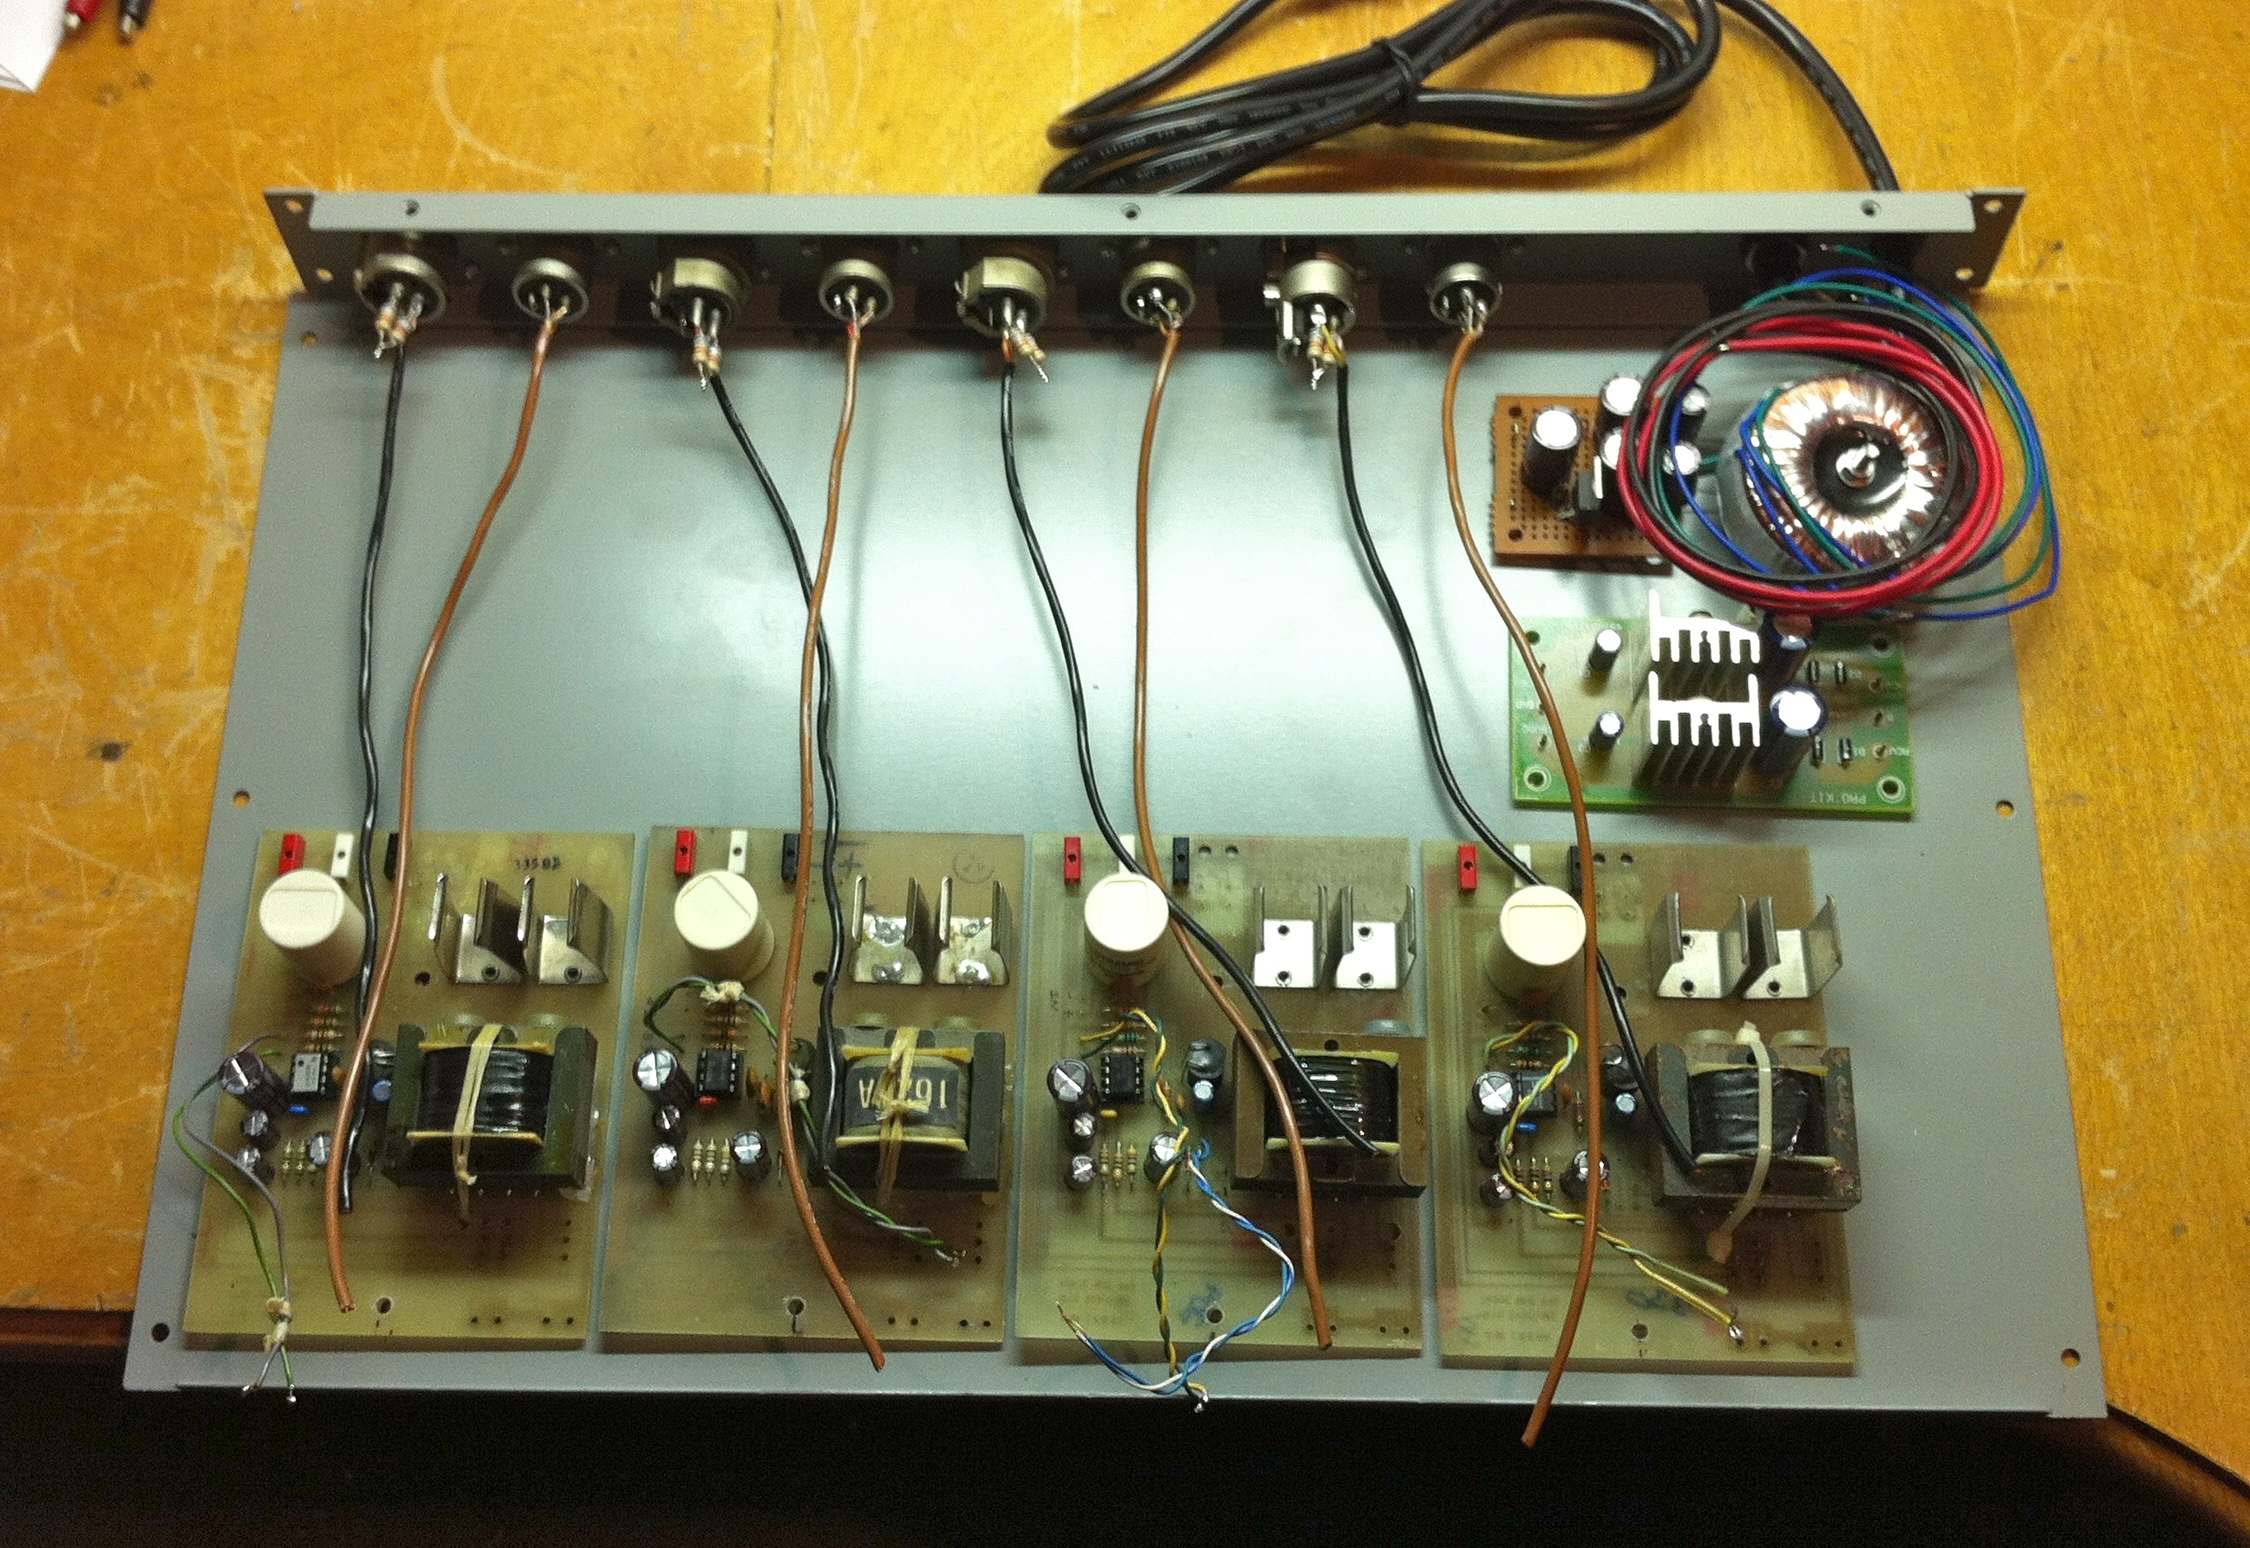 Preamp Analog Audio Repair Figure 1 Balance Input Pre Microphone Amplifier Circuit Laying Out 4 Channel Mic Opto Limiter